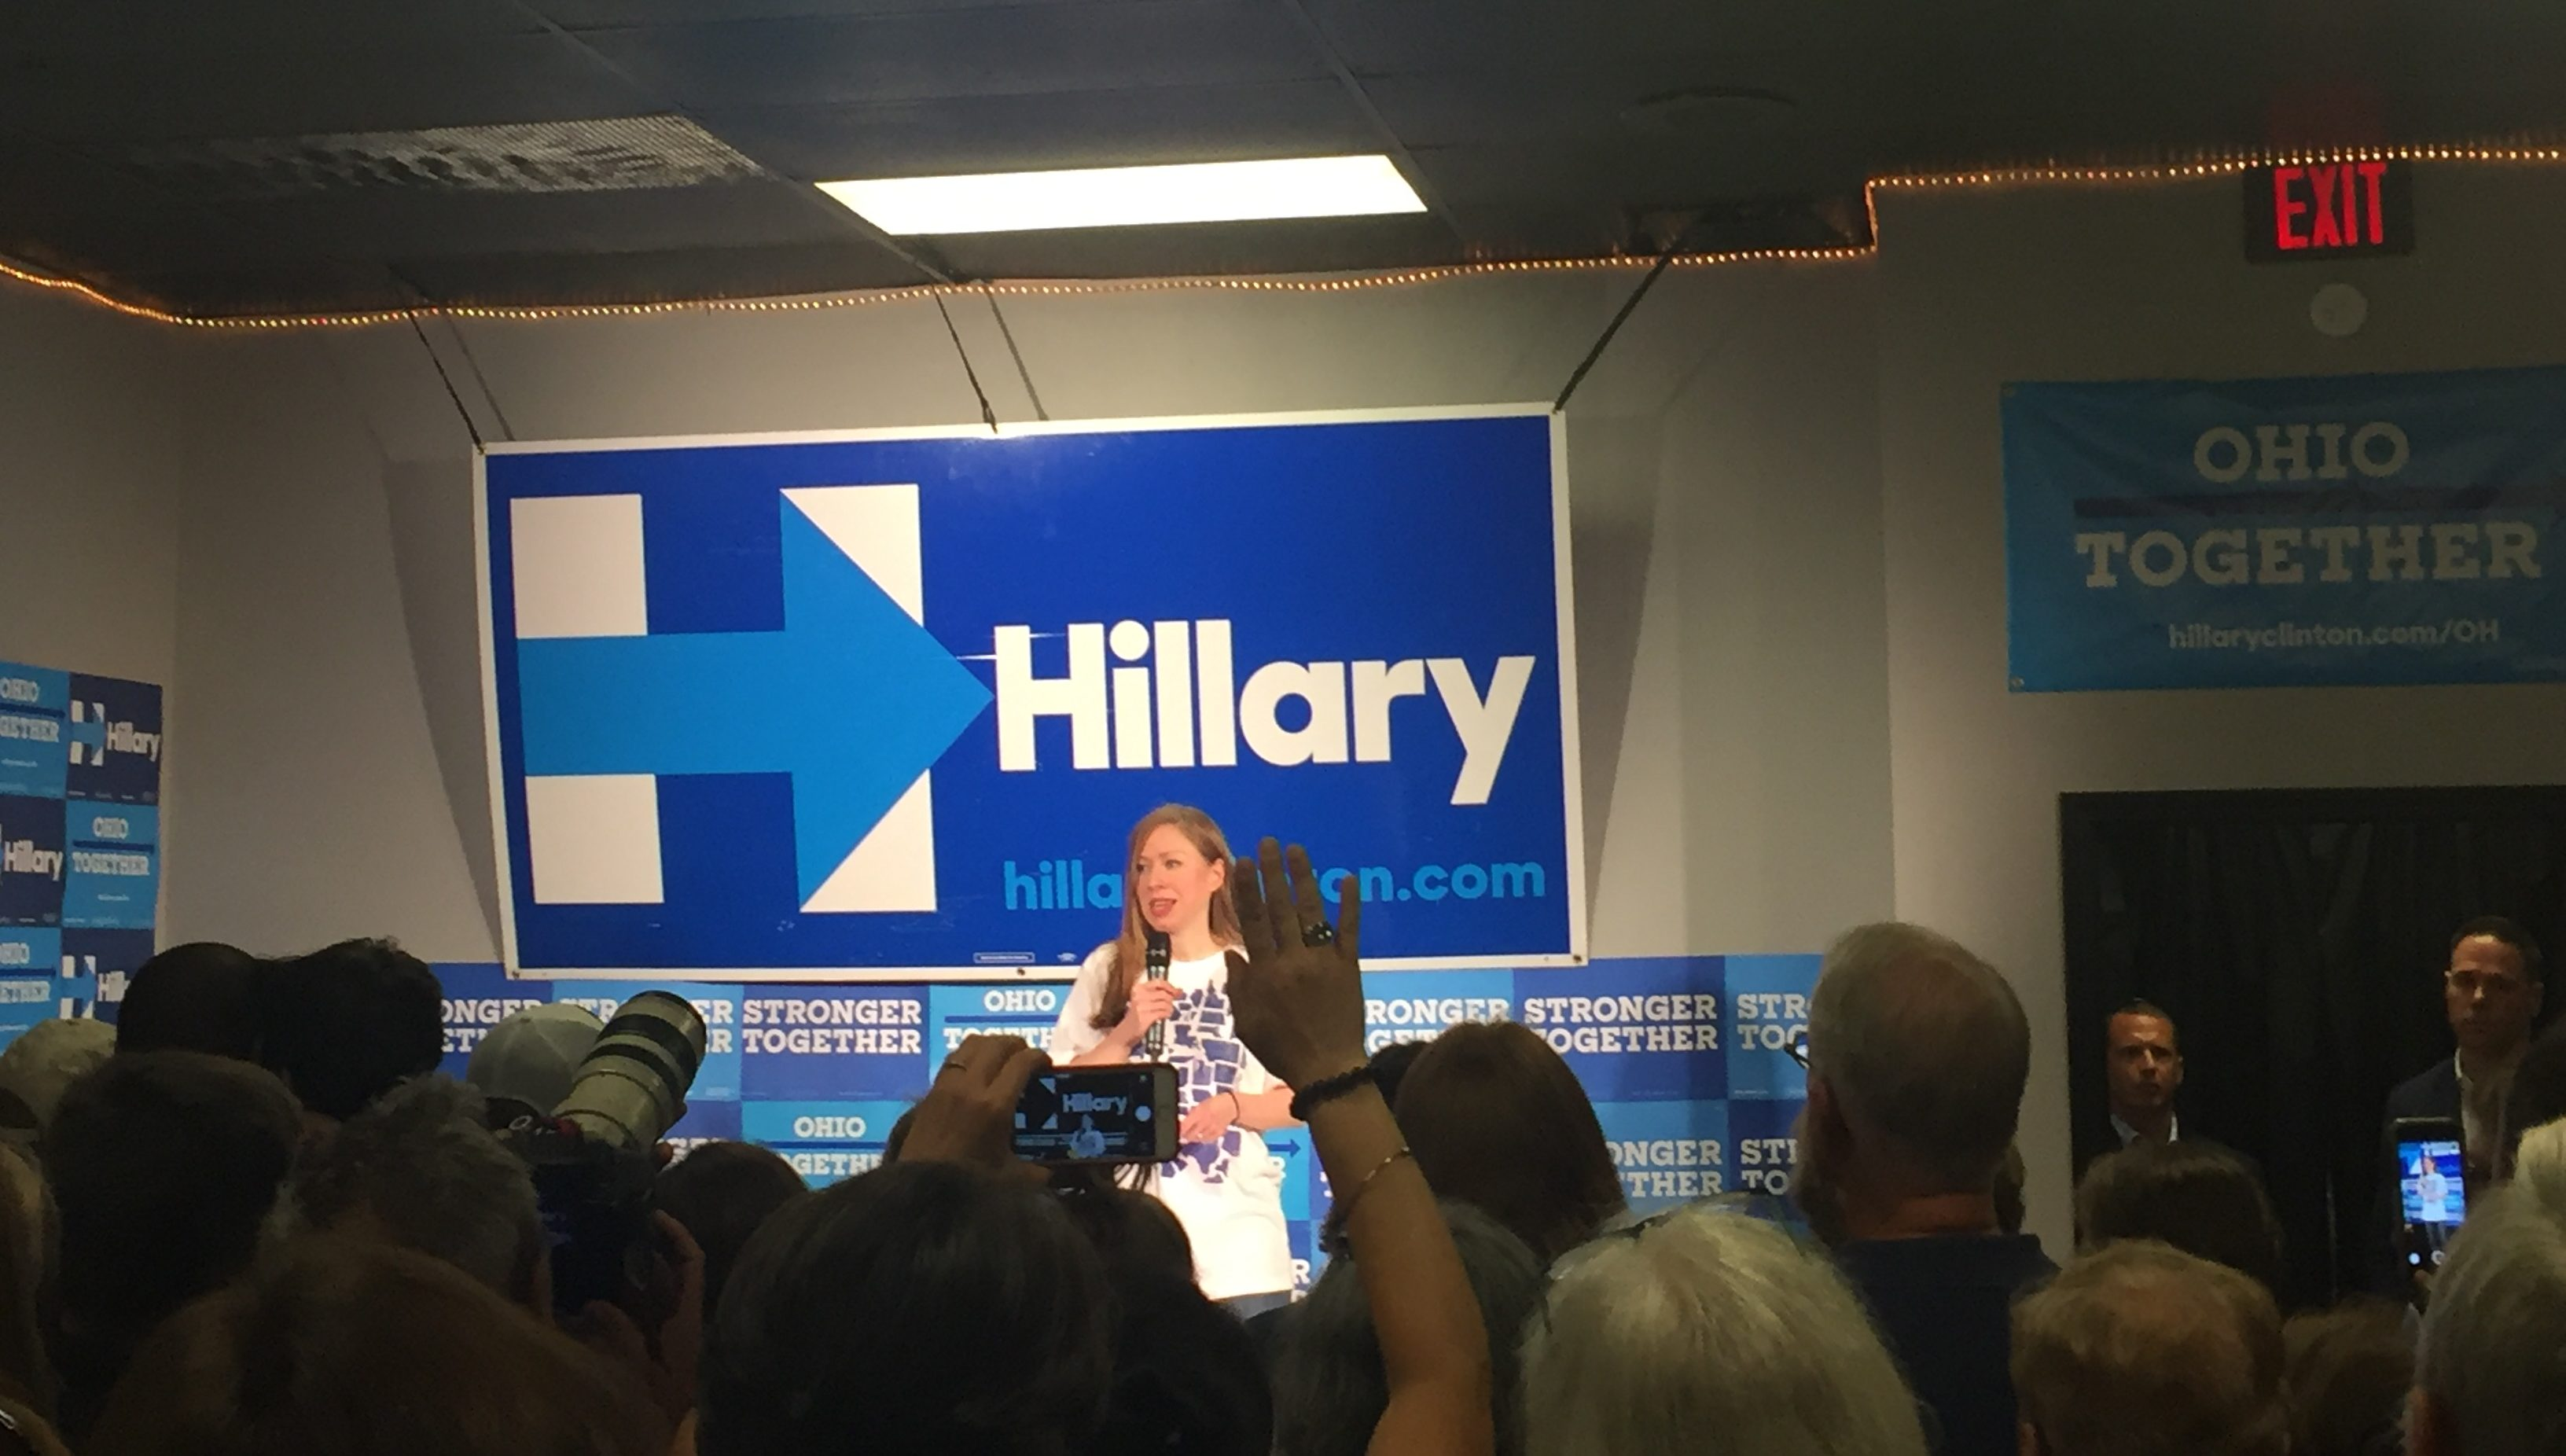 Chelsea Clinton to campaign in Columbus area Wednesday